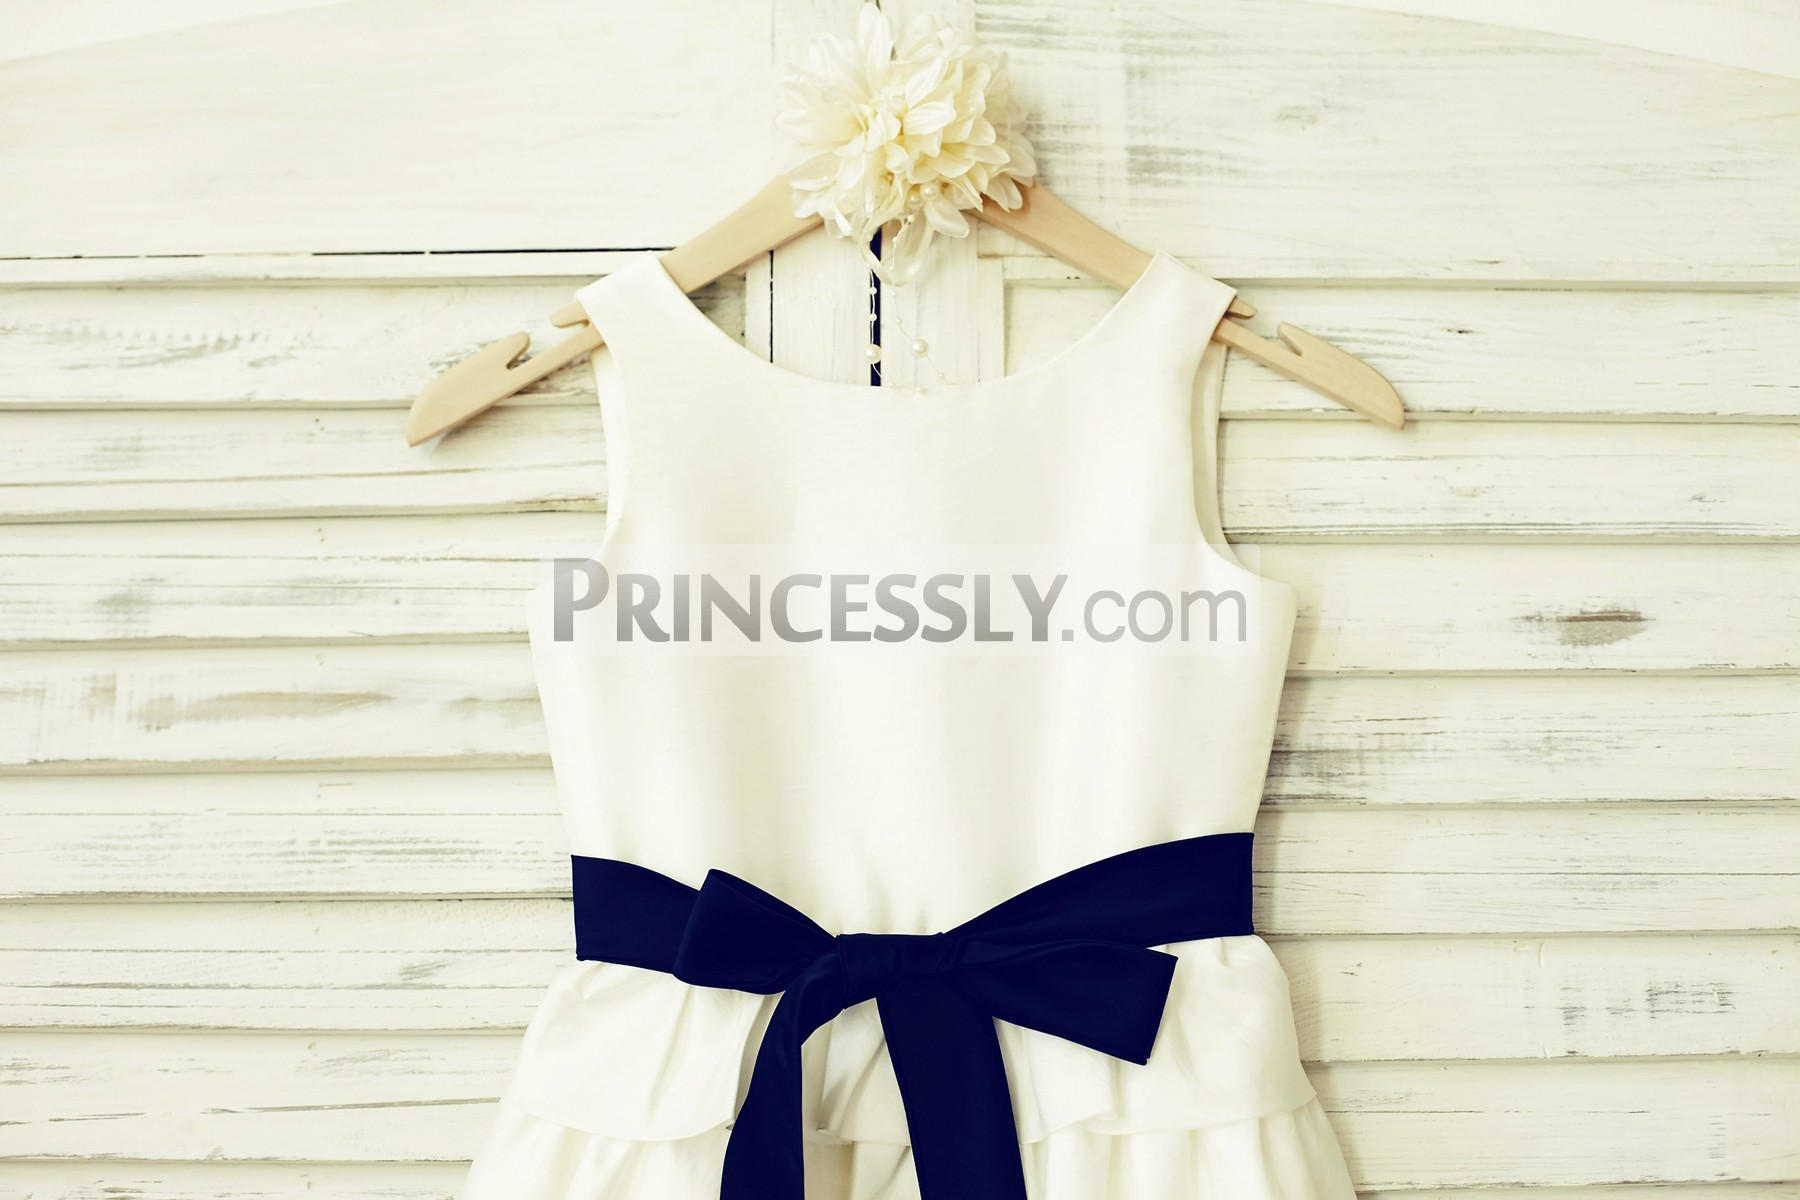 Scoop neck sleeveless bodice with navy blue sash